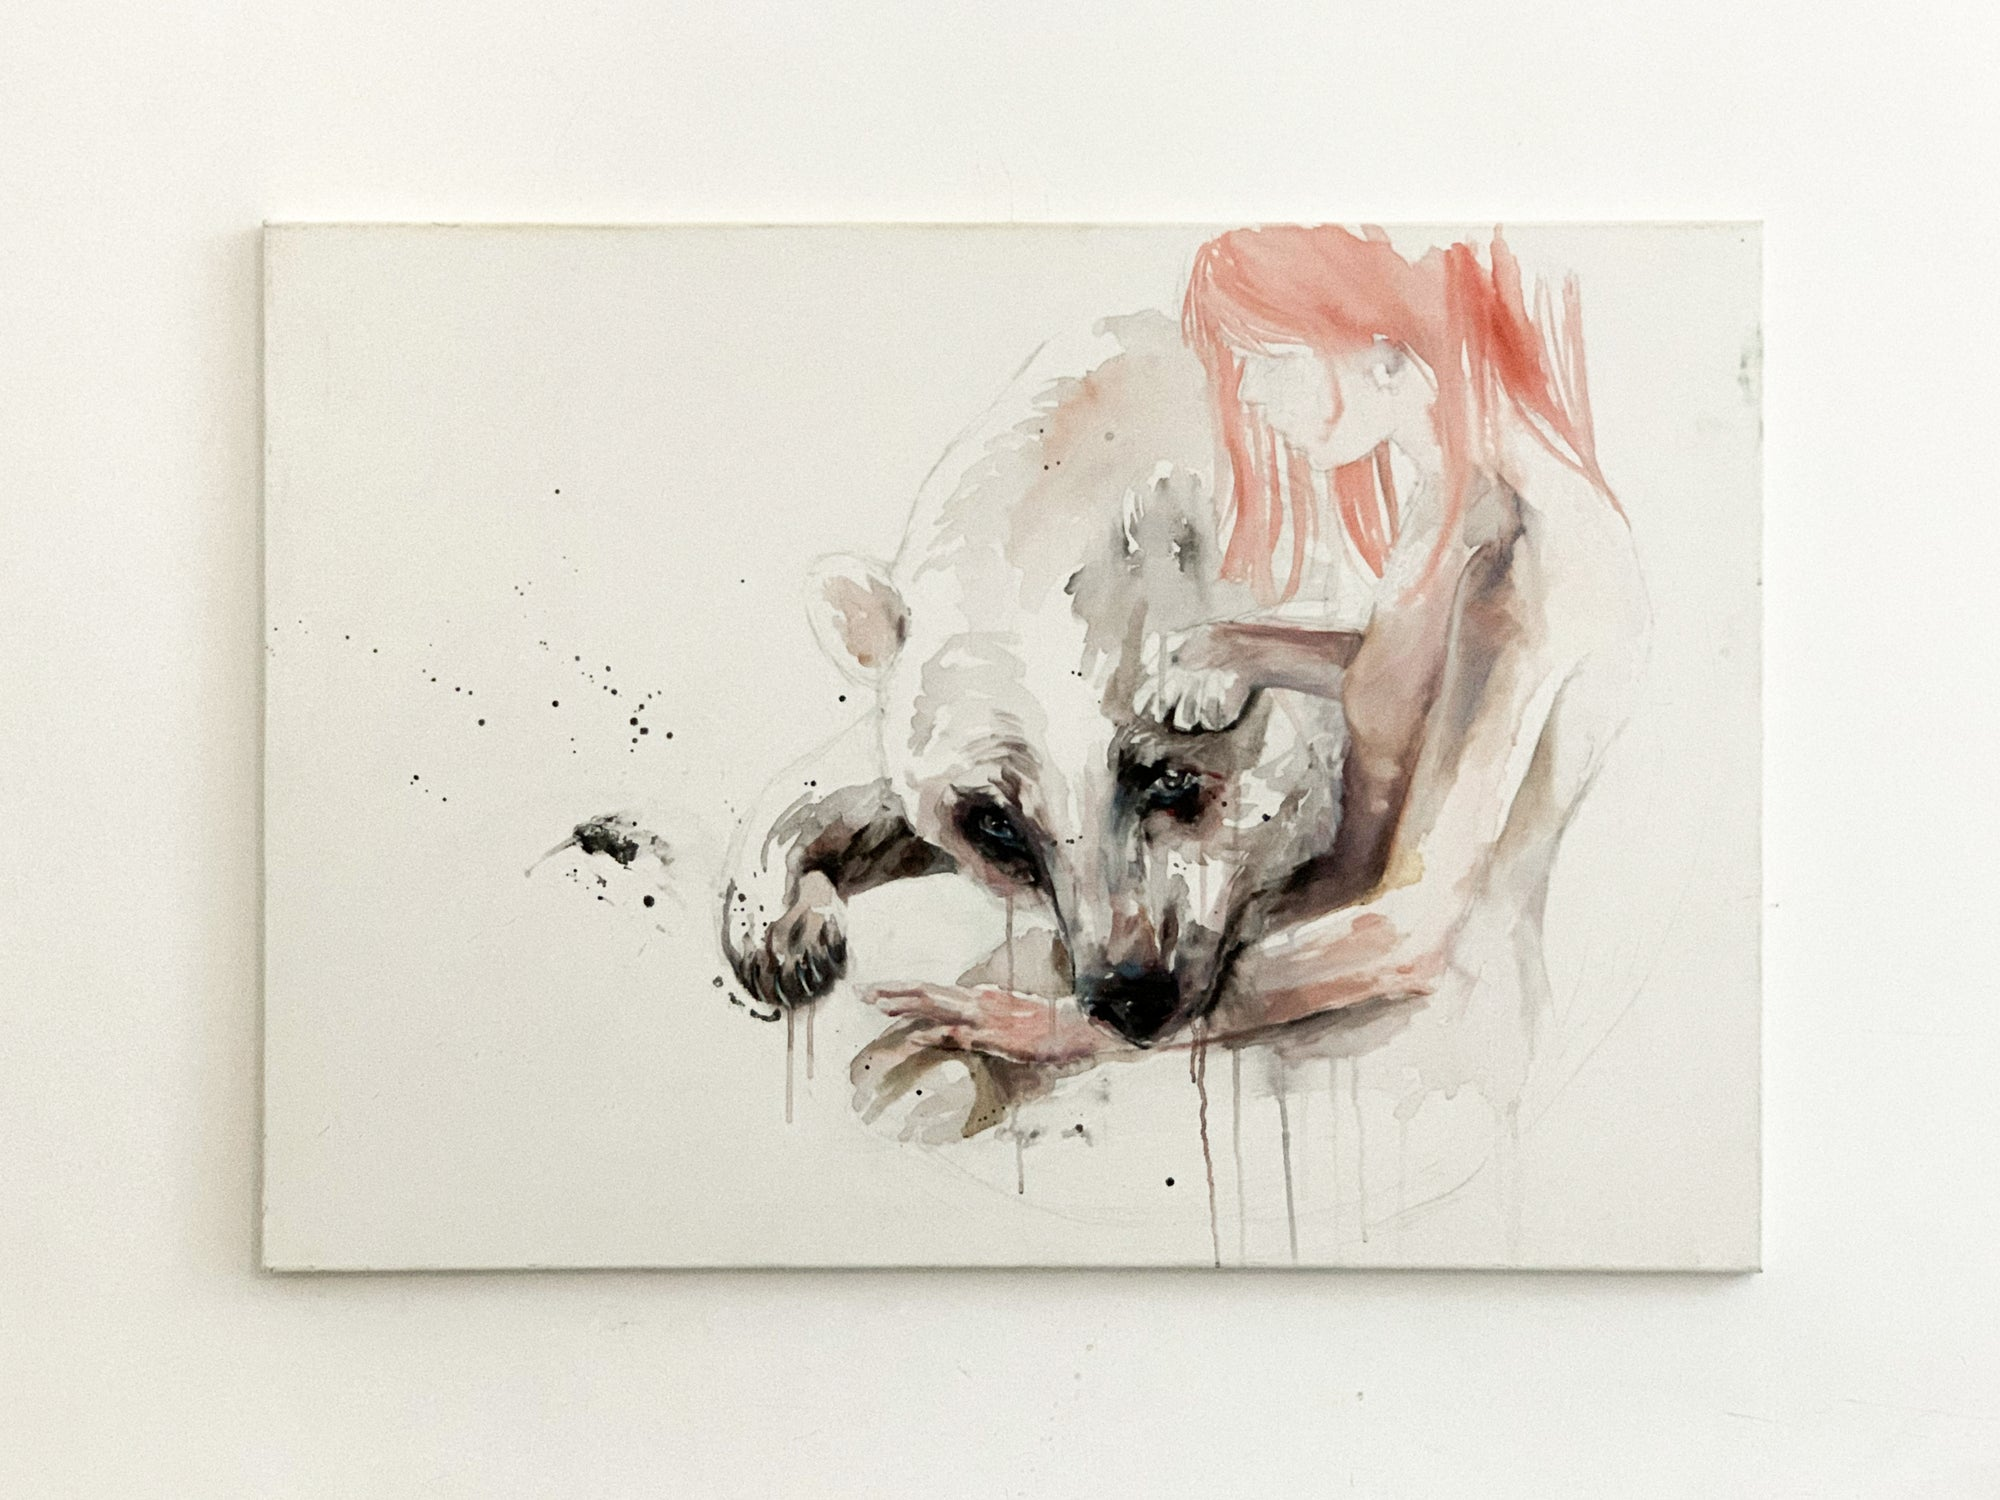 Agnes-Cecile you are not wrong